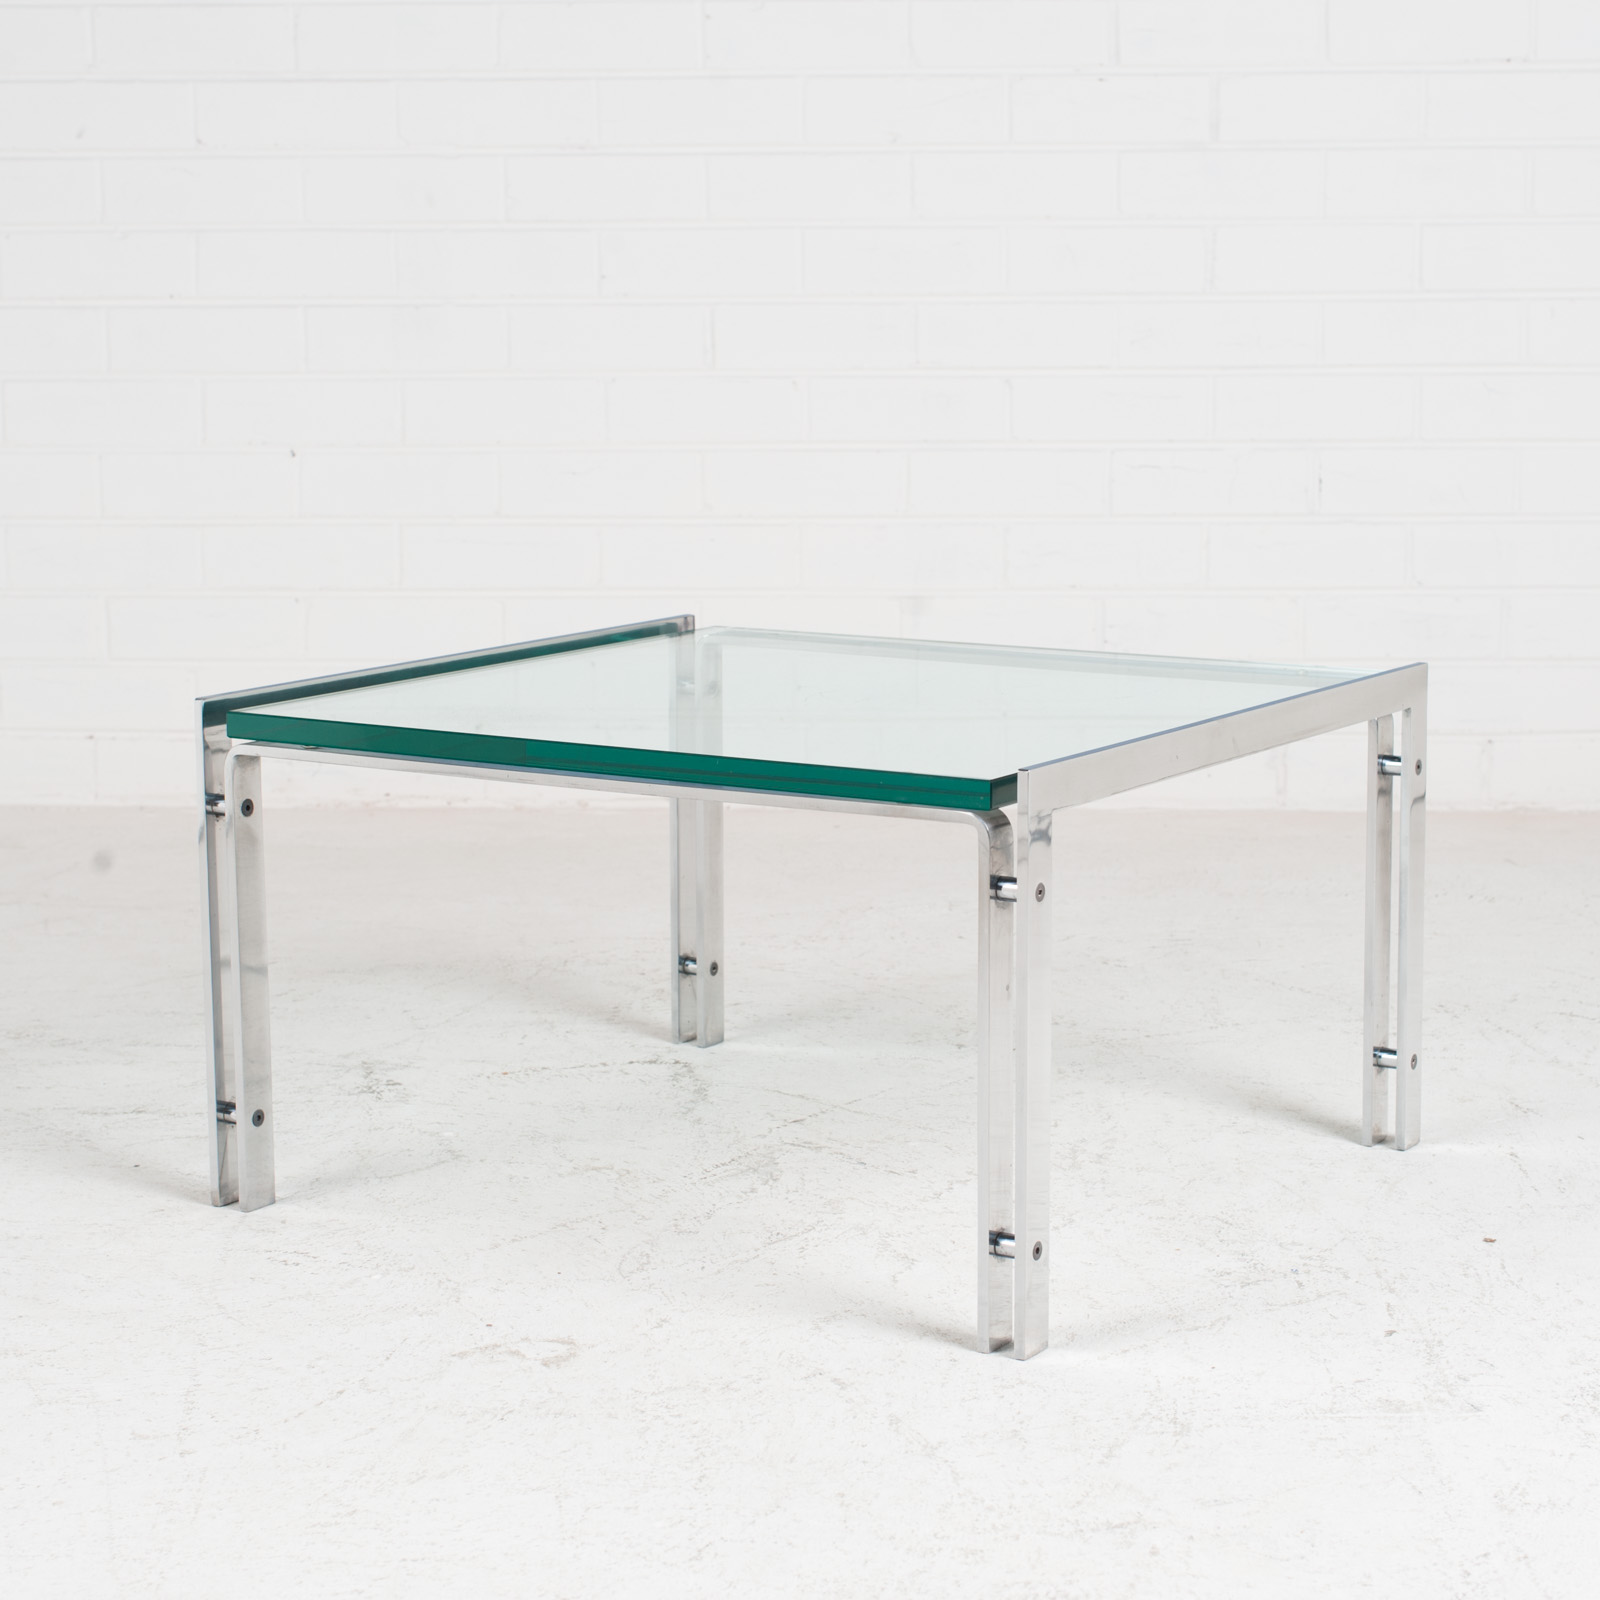 M1 Coffee Table By Hank Kwint For Metaform In Chrome 1970s Netherlands 02